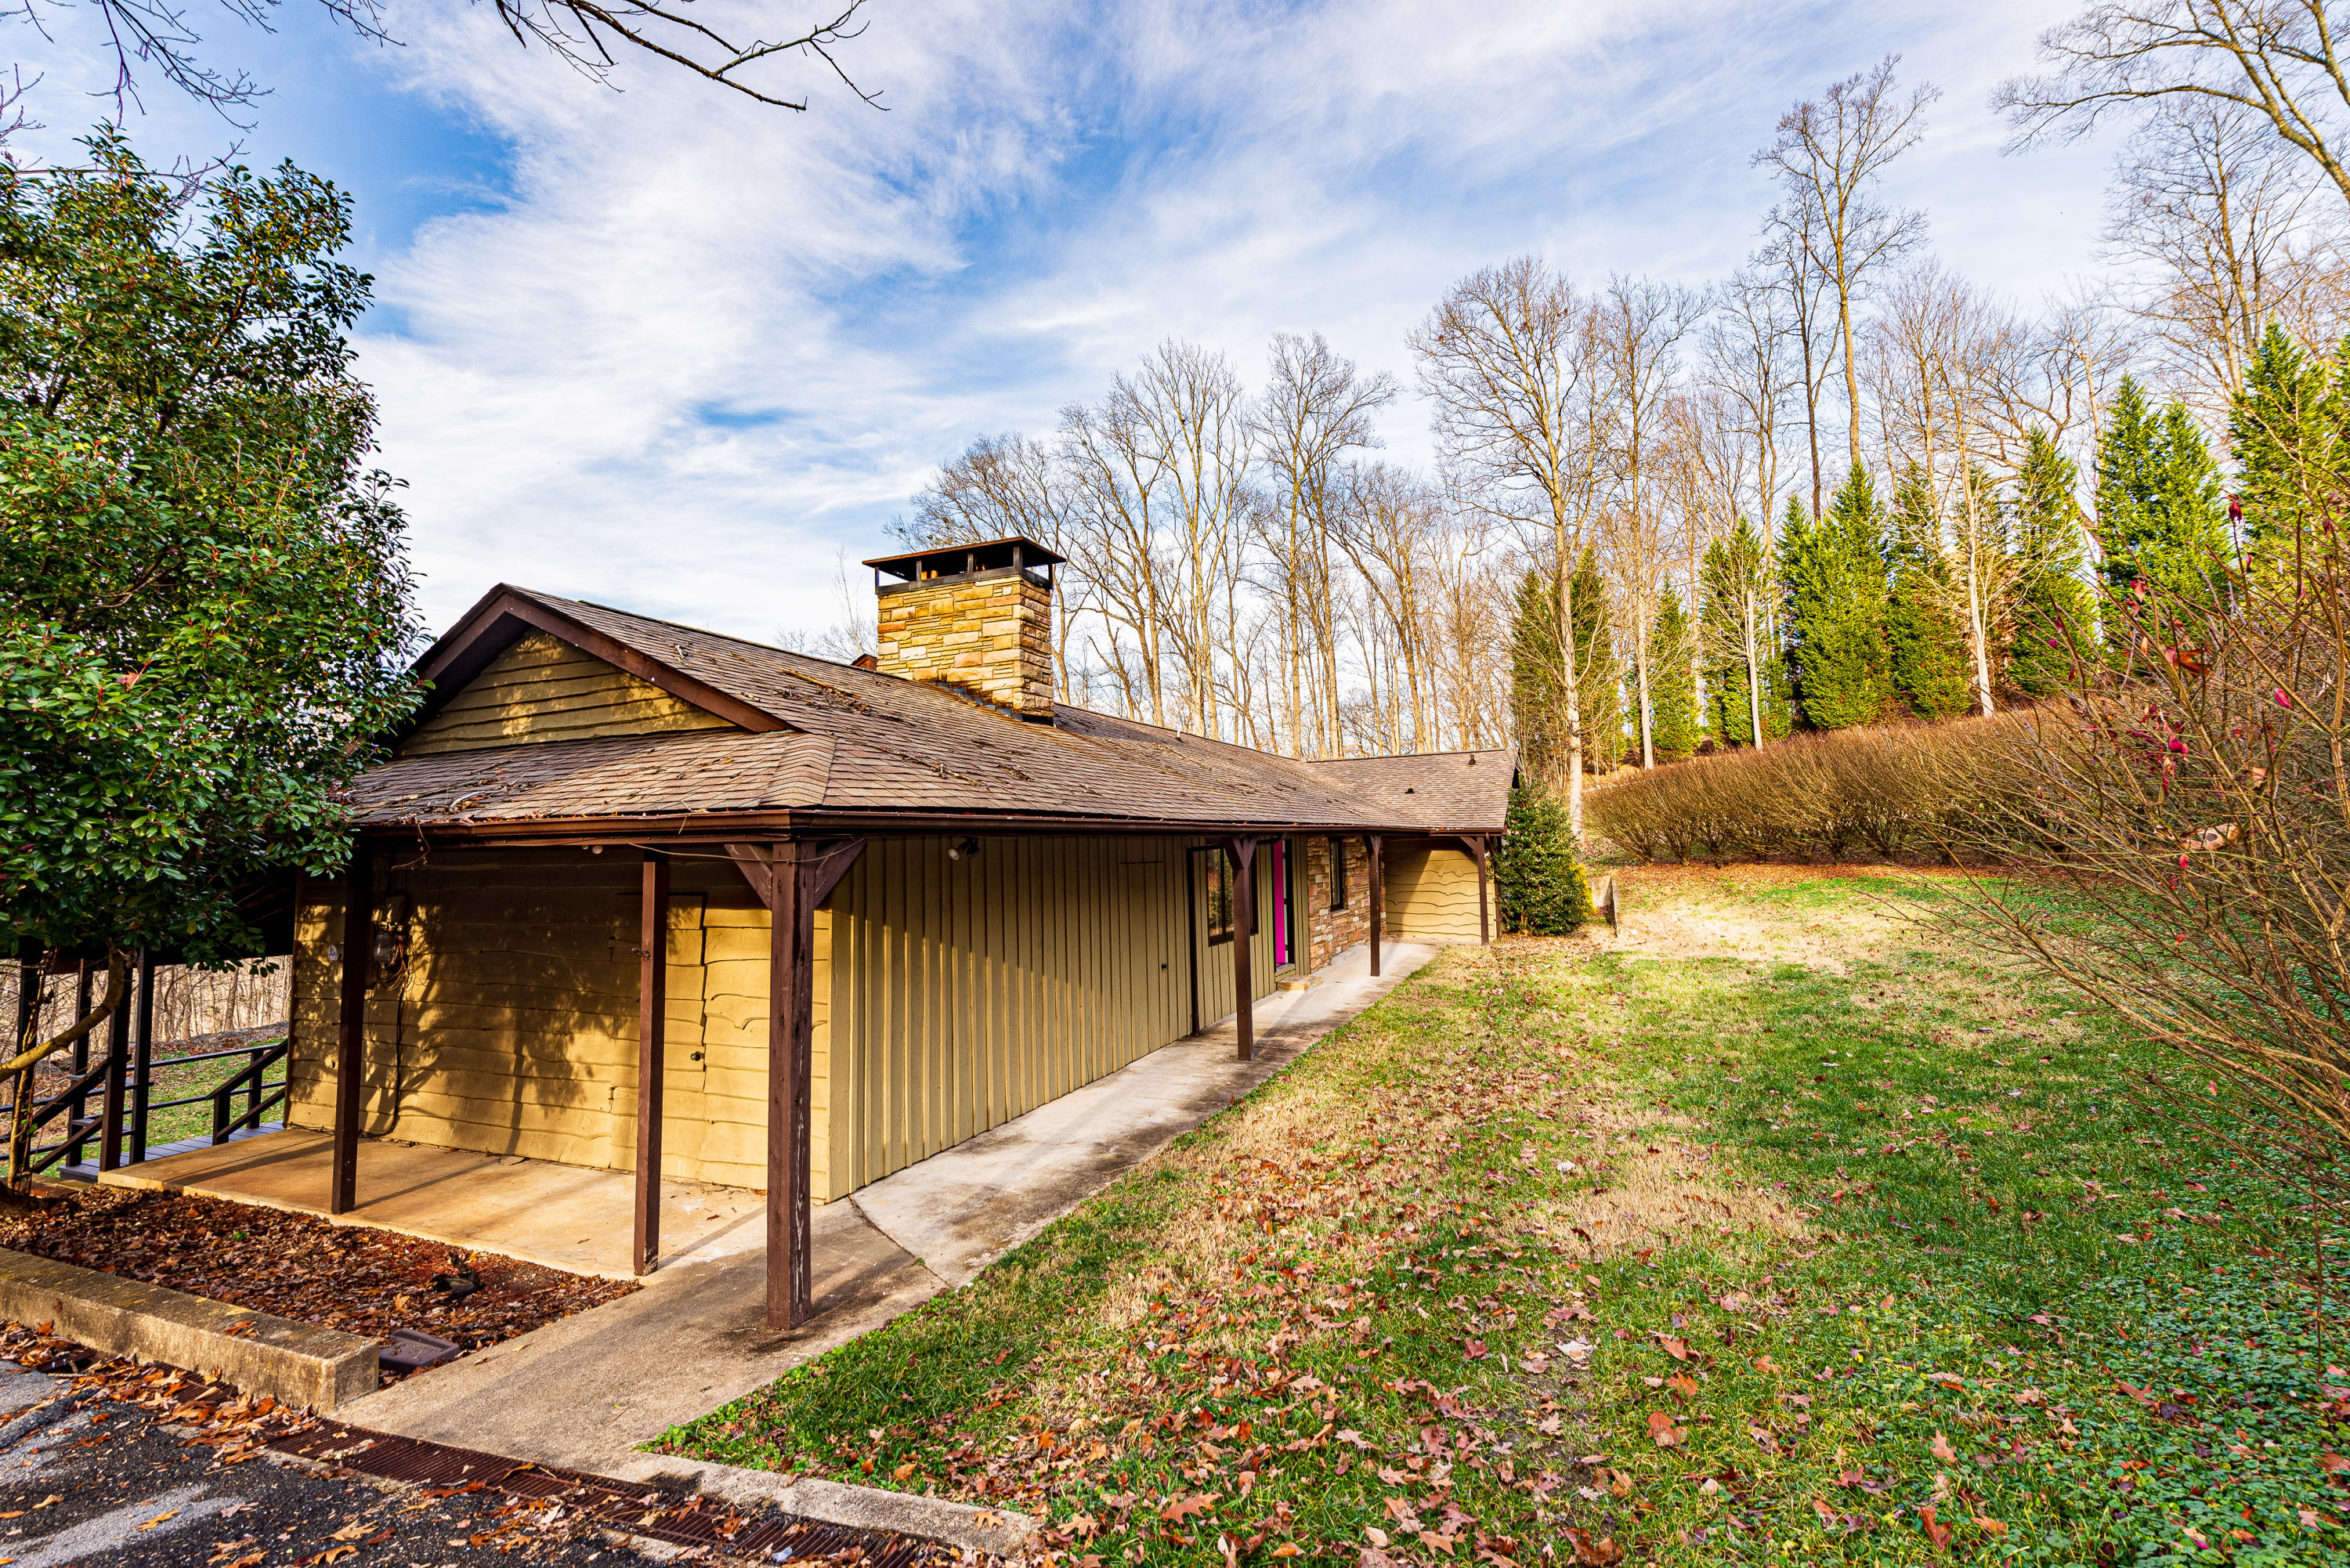 4518 Mitchell Road, Kingsport, Tennessee 37664, 4 Bedrooms Bedrooms, ,3 BathroomsBathrooms,Single Family,For Sale,4518 Mitchell Road,9917171